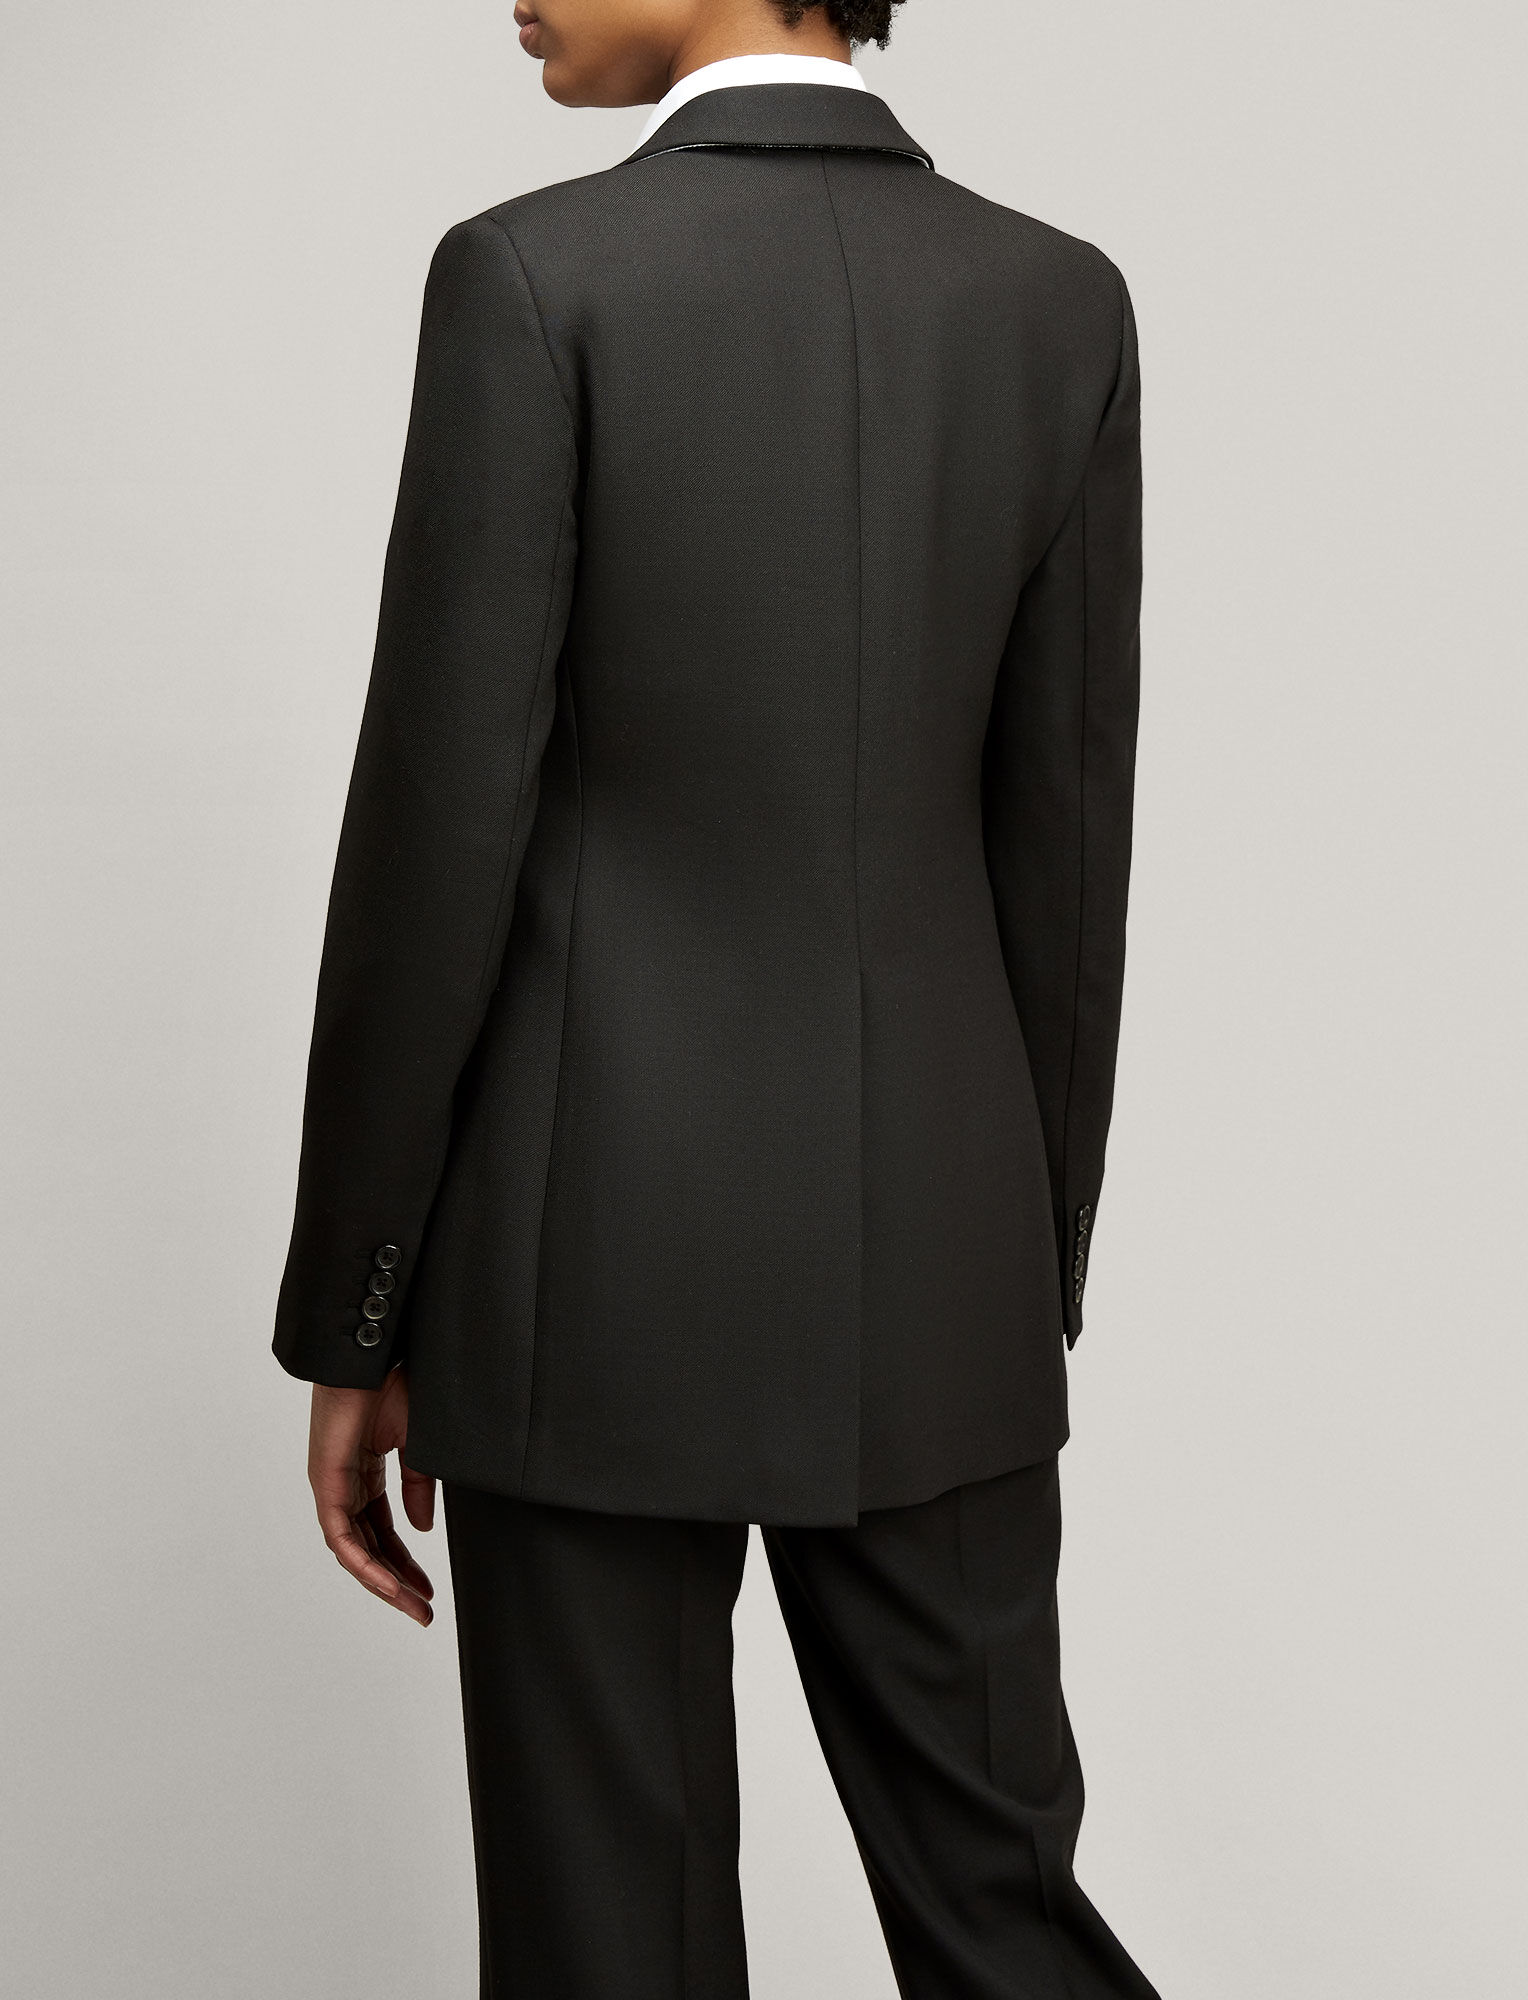 Joseph, Comfort Wool Laurent Jacket, in Black